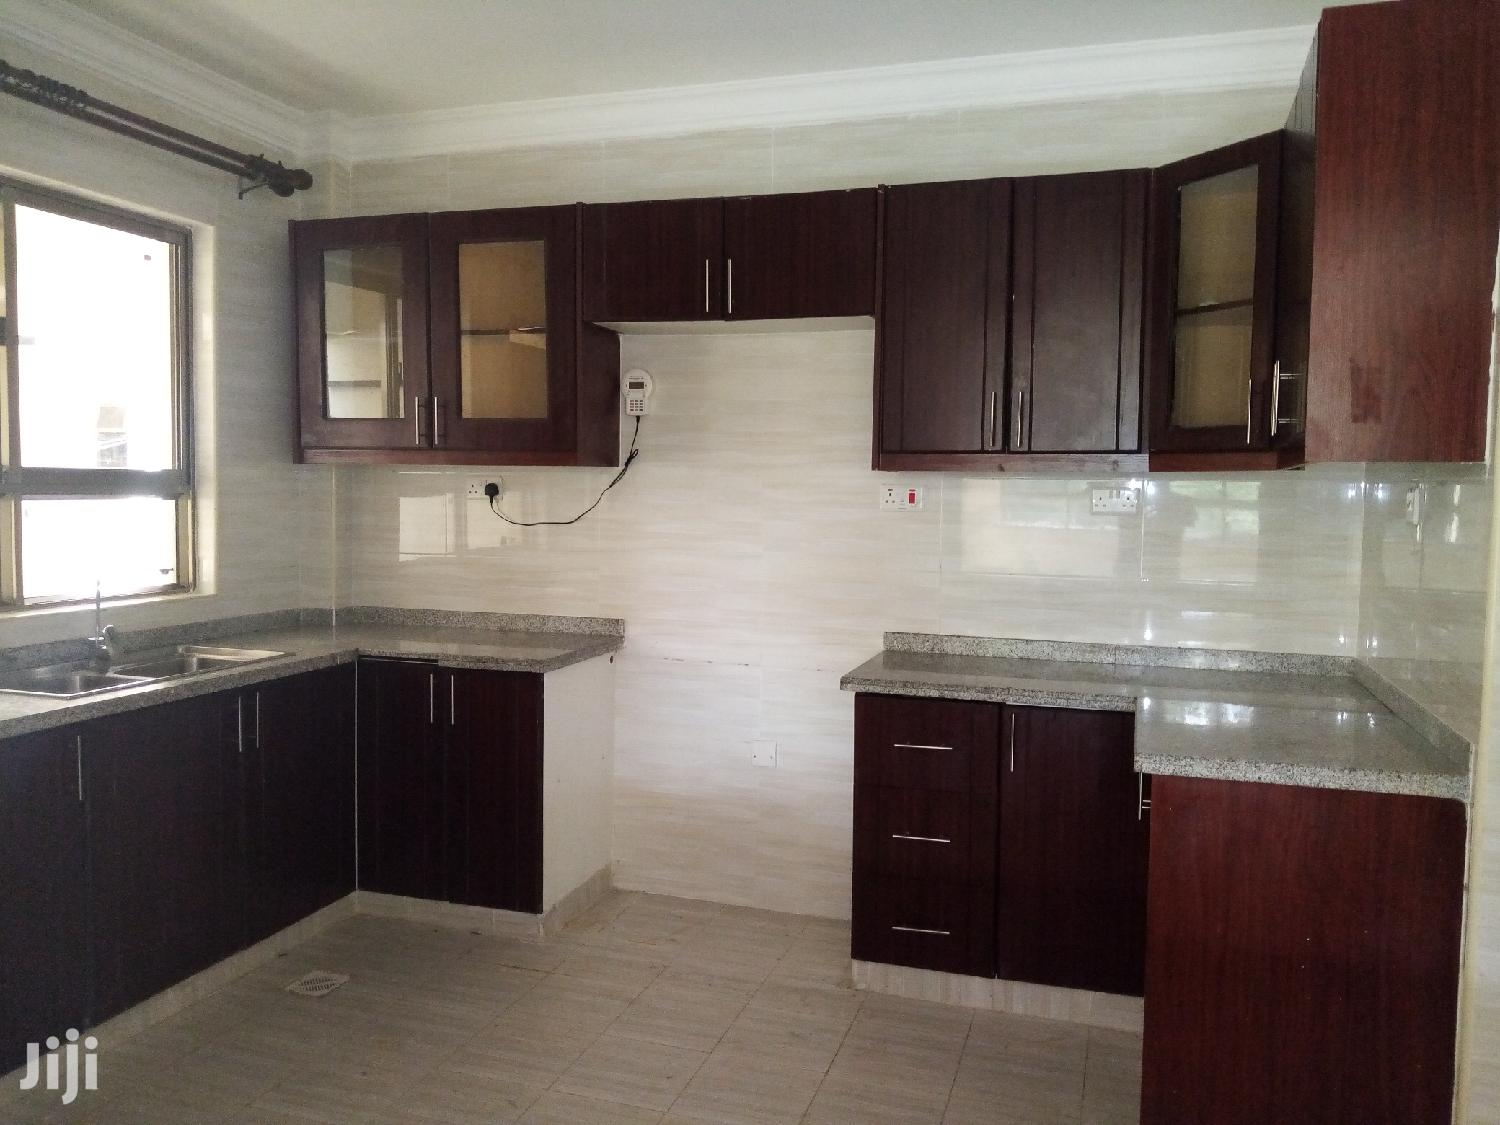 Property World, 2br Apartment En-Suite With Lift and Secure | Houses & Apartments For Rent for sale in Lavington, Nairobi, Kenya